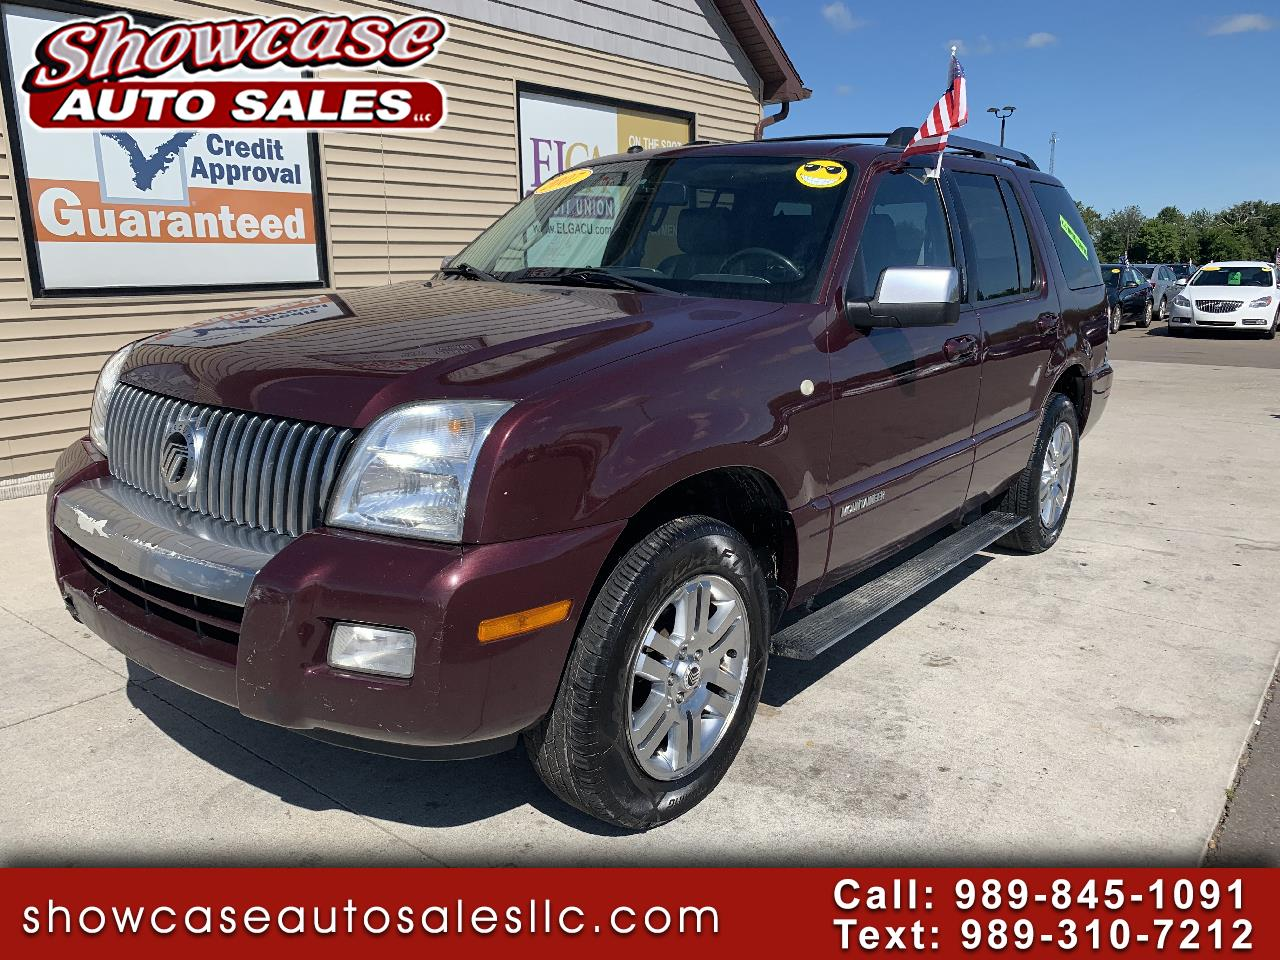 Mercury Mountaineer AWD 4dr V6 Premier 2007